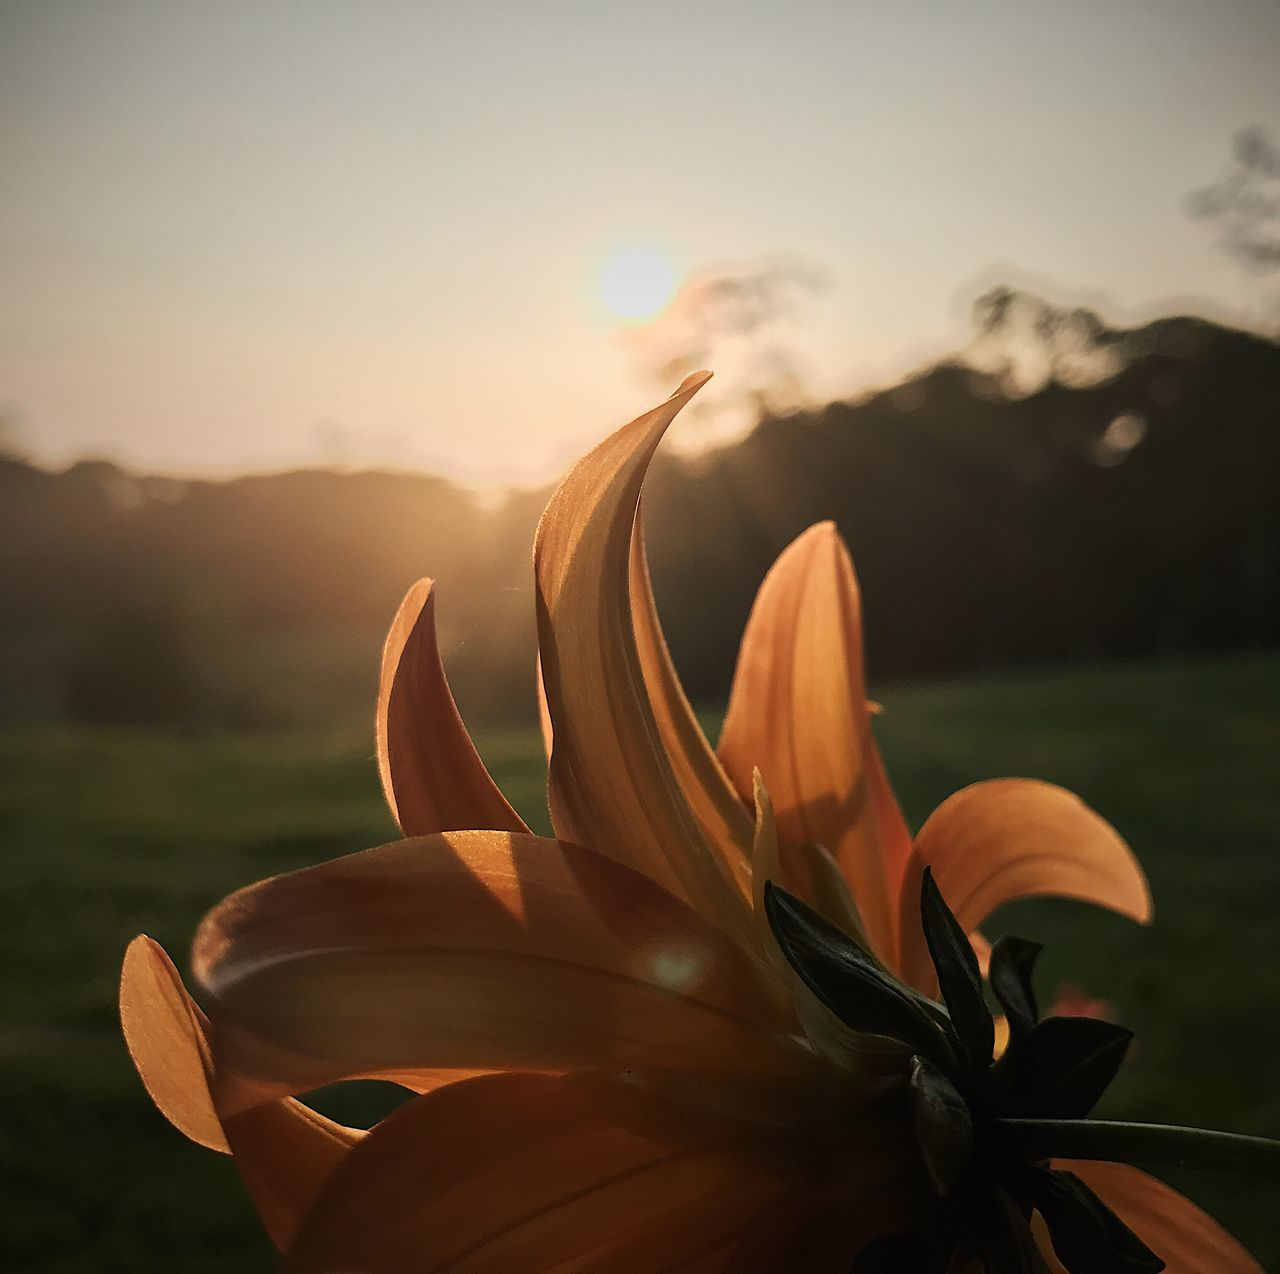 flower, nature, beauty in nature, petal, fragility, sunset, growth, outdoors, freshness, sunlight, flower head, plant, field, focus on foreground, blooming, close-up, no people, sky, day